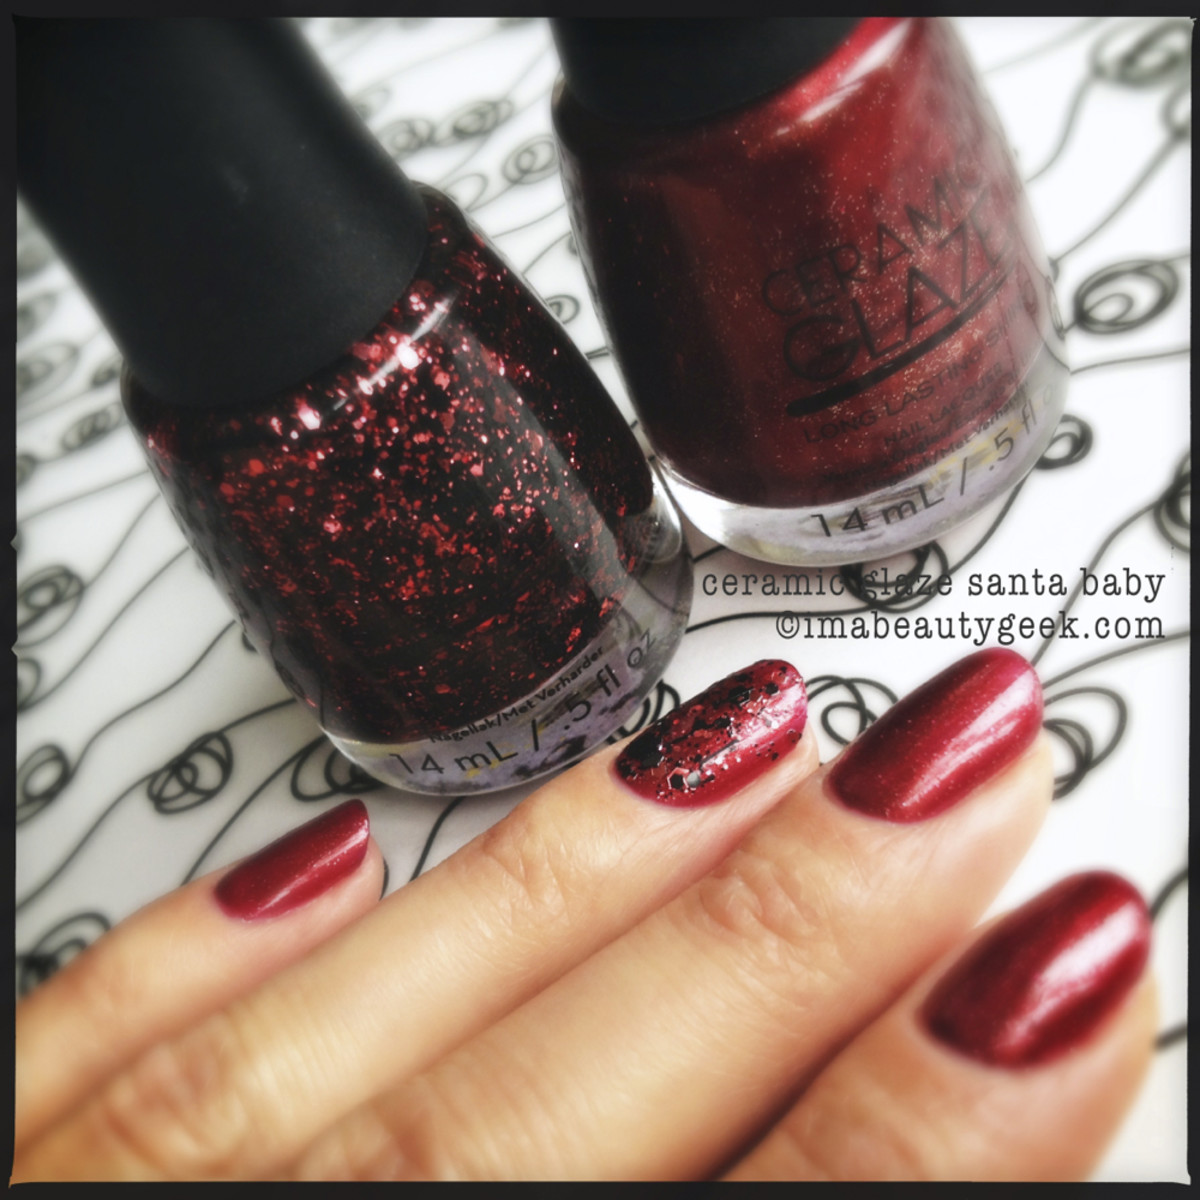 Ceramic Glaze nail lacquer in Santa Baby with Ceramic Glaze On the Naughty List Tinsel Glitter